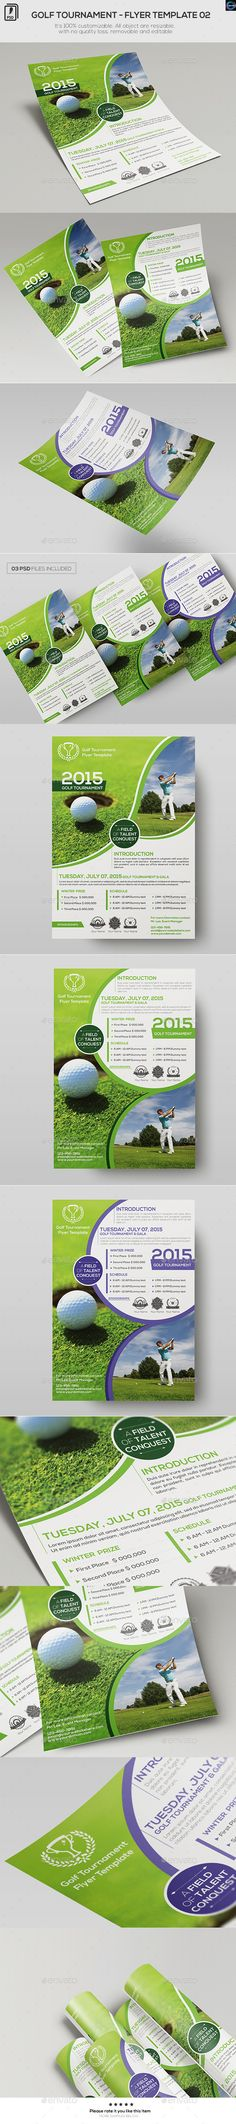 Buy Golf Tournament - Flyer Template 02 by on GraphicRiver. All object are resizable, with no quality loss, removable and editable 03 different . Brochure Design, Flyer Design, Cv Web, Fitness Flyer, Christmas Flyer, Promotional Flyers, Event Flyer Templates, Party Flyer, Marketing